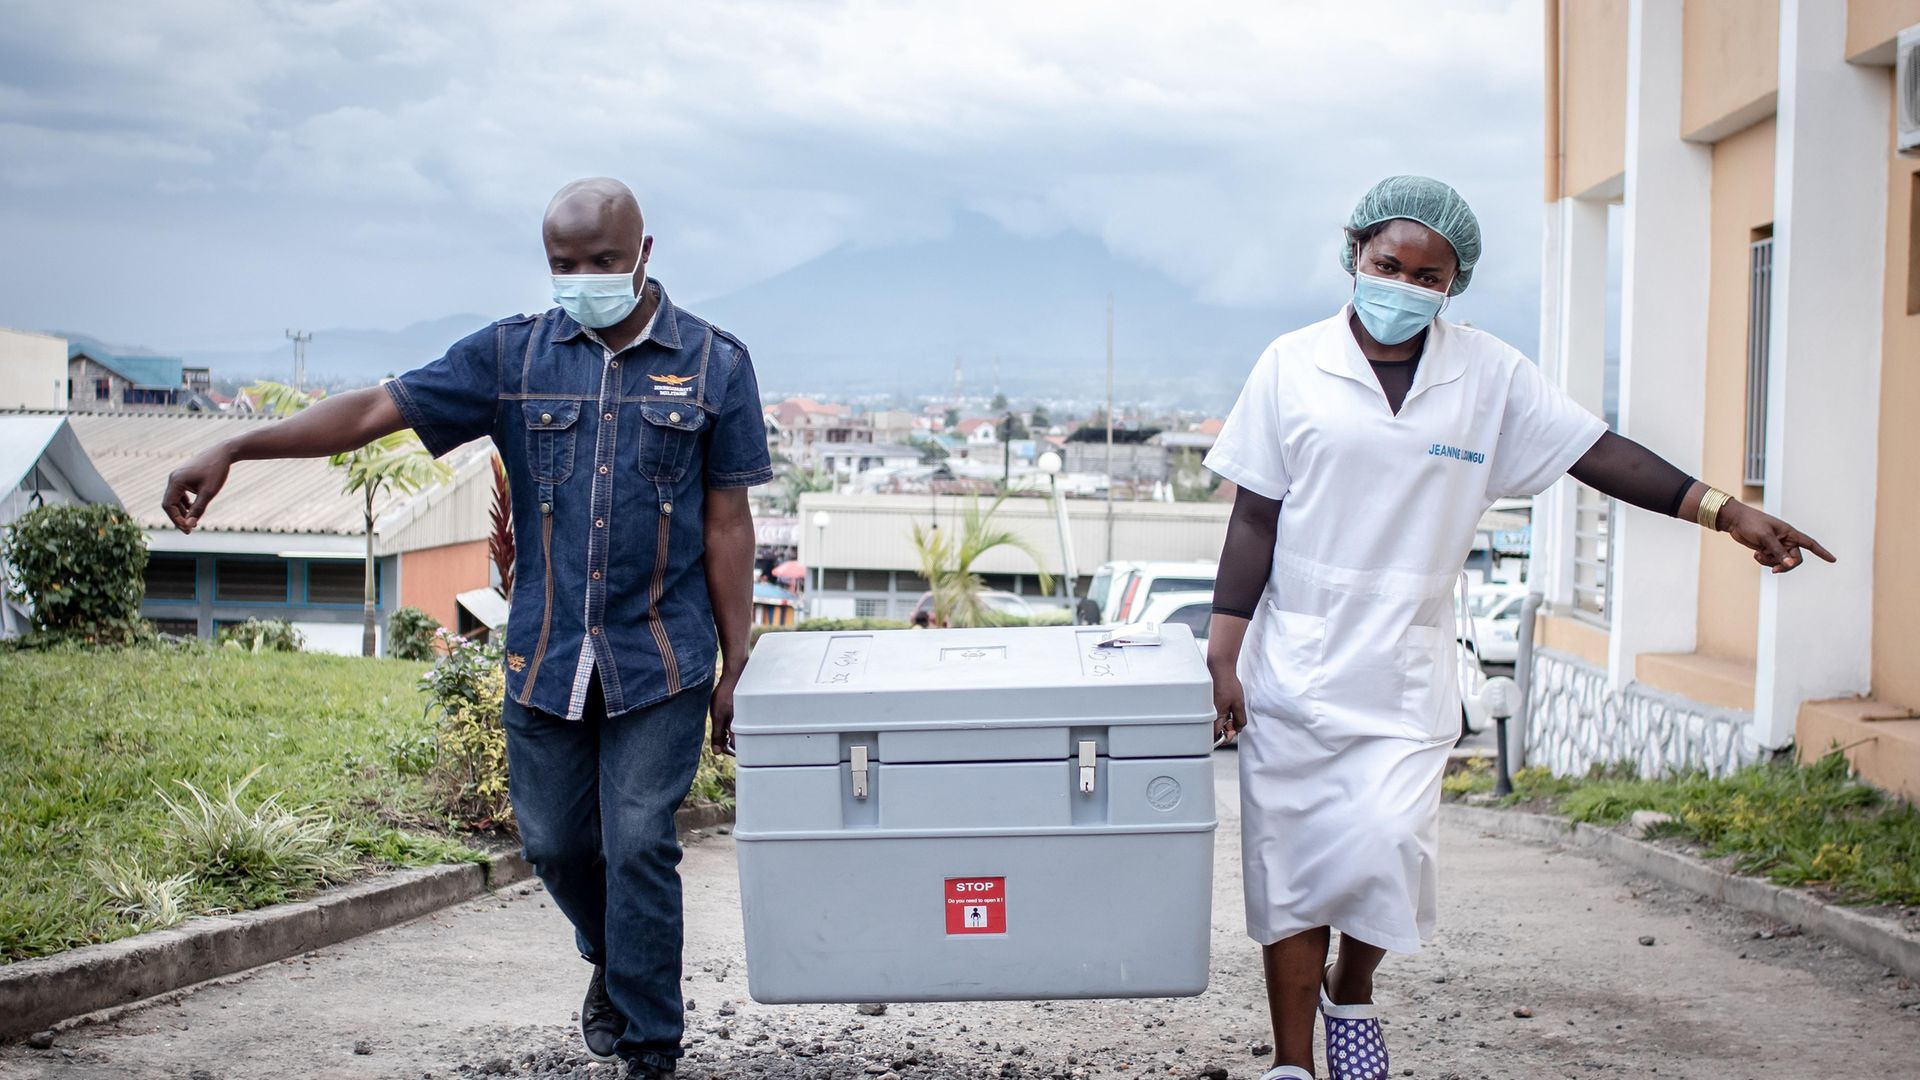 LEFT BEHIND: Health workers bring Covid-19 vaccines to a site in Goma, Democratic Republic of Congo. Africa has received only 2% of the vaccines administered globally - Credit: Getty Images